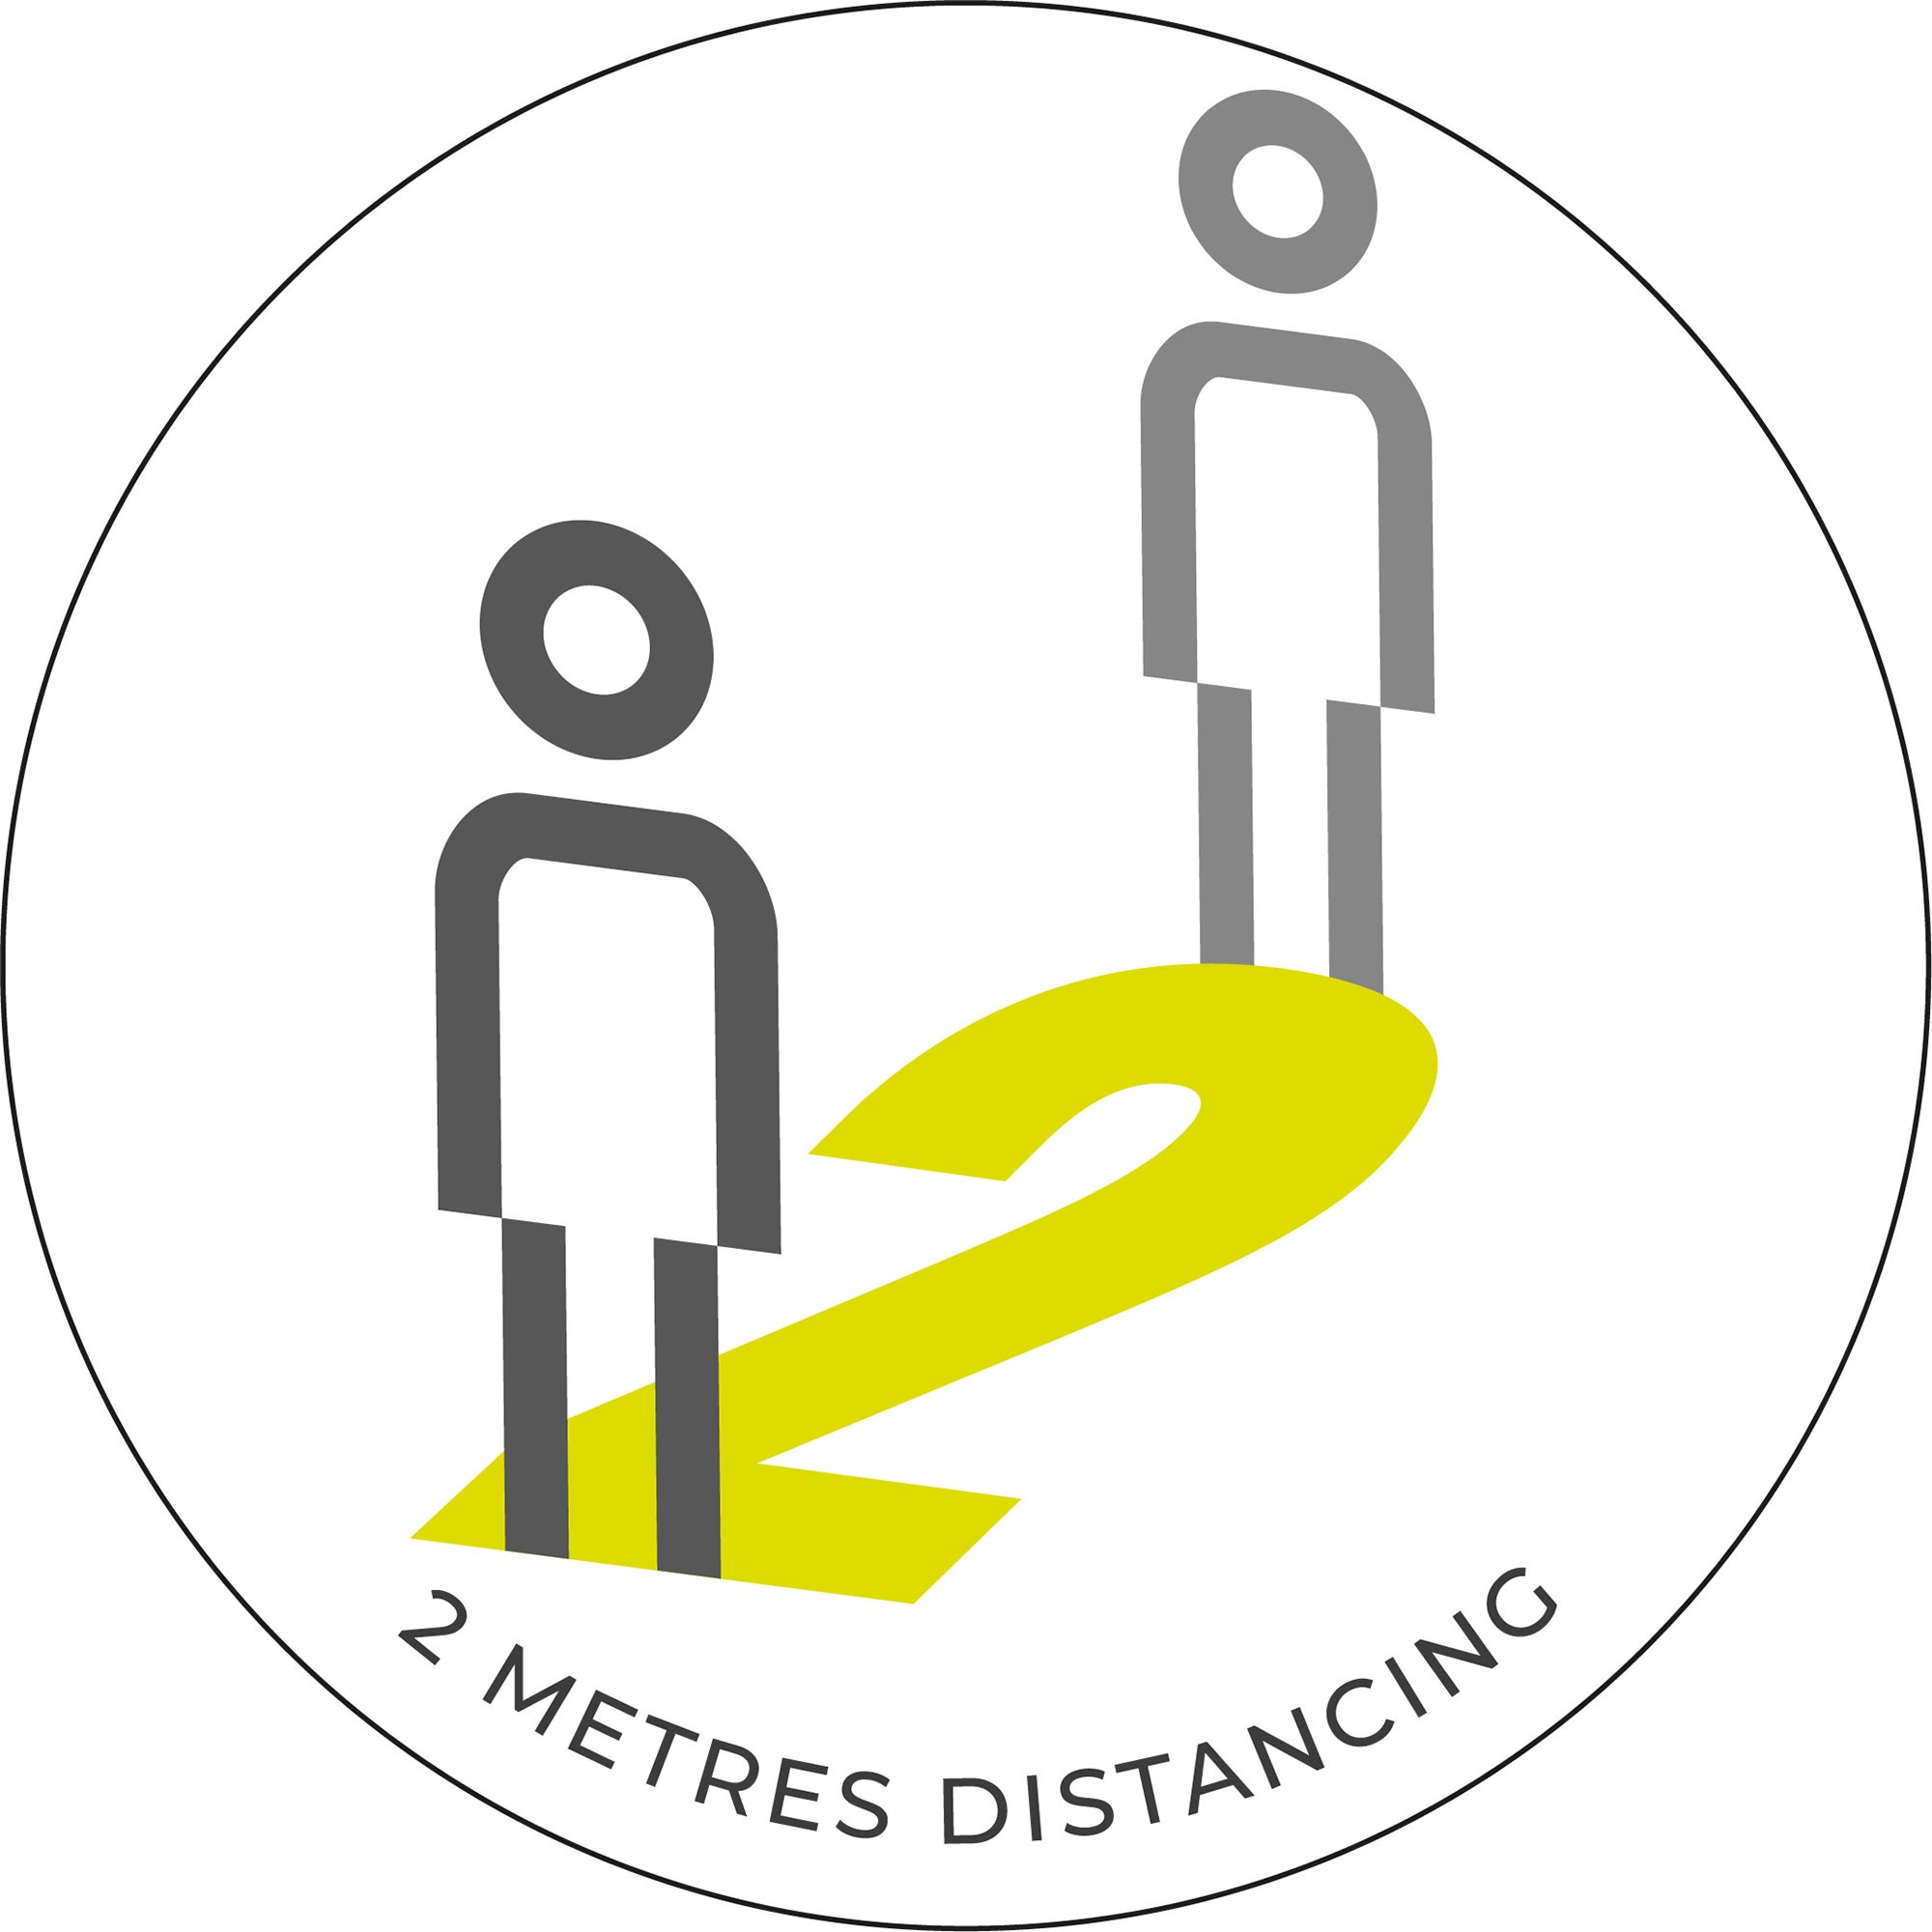 2 Metre Distancing - White Sticker